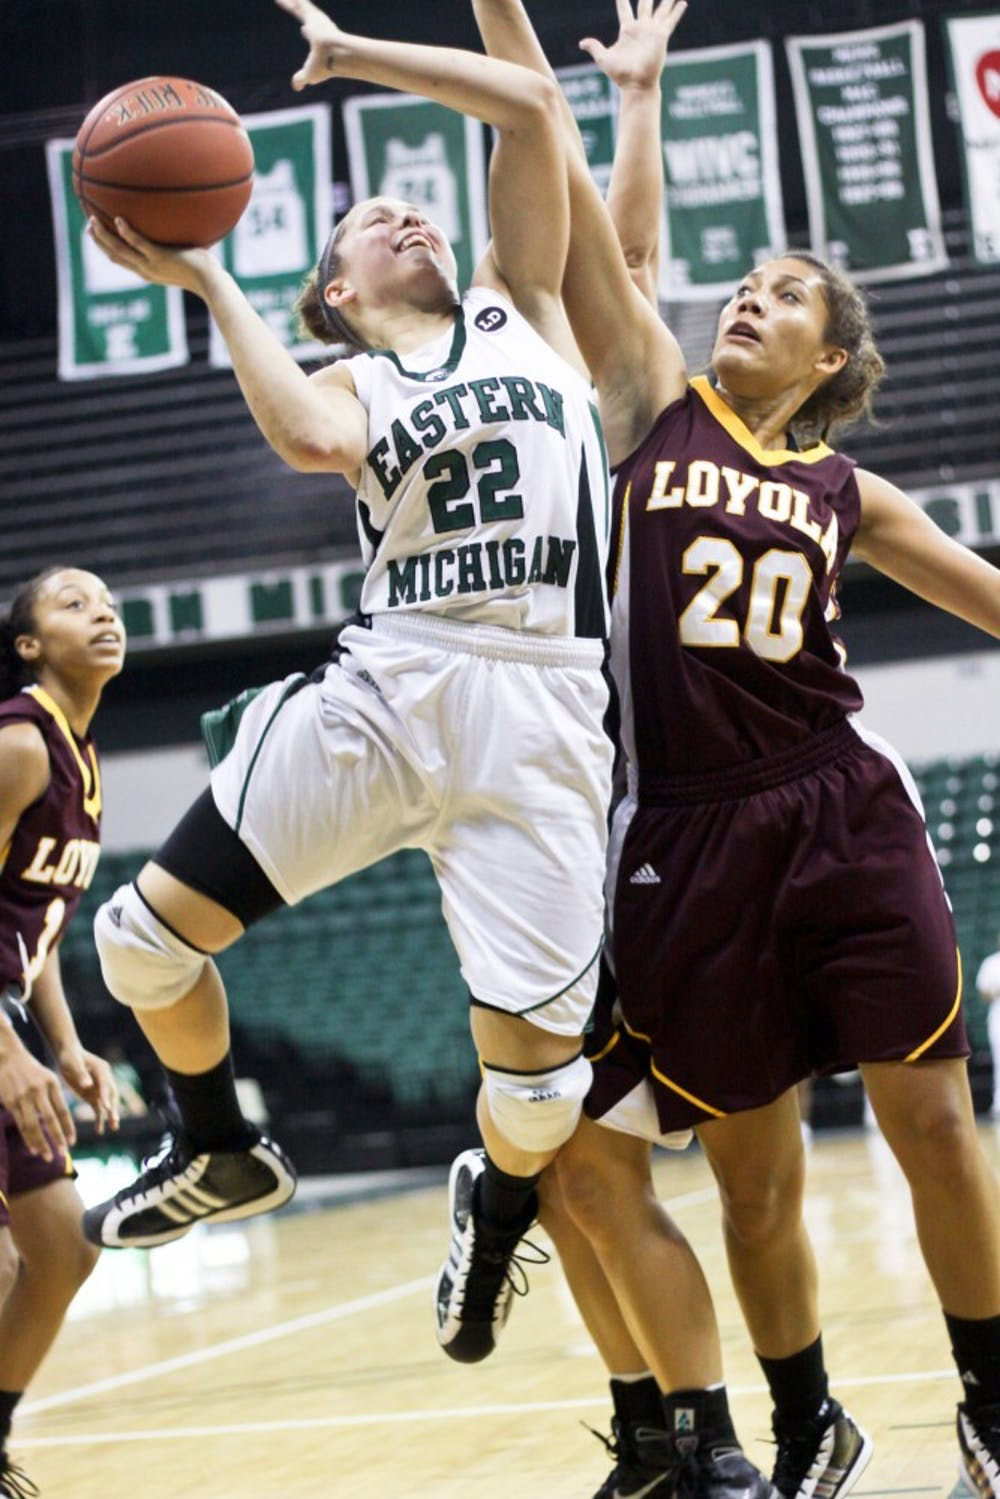 Women's basketball starts season with 82-64 victory